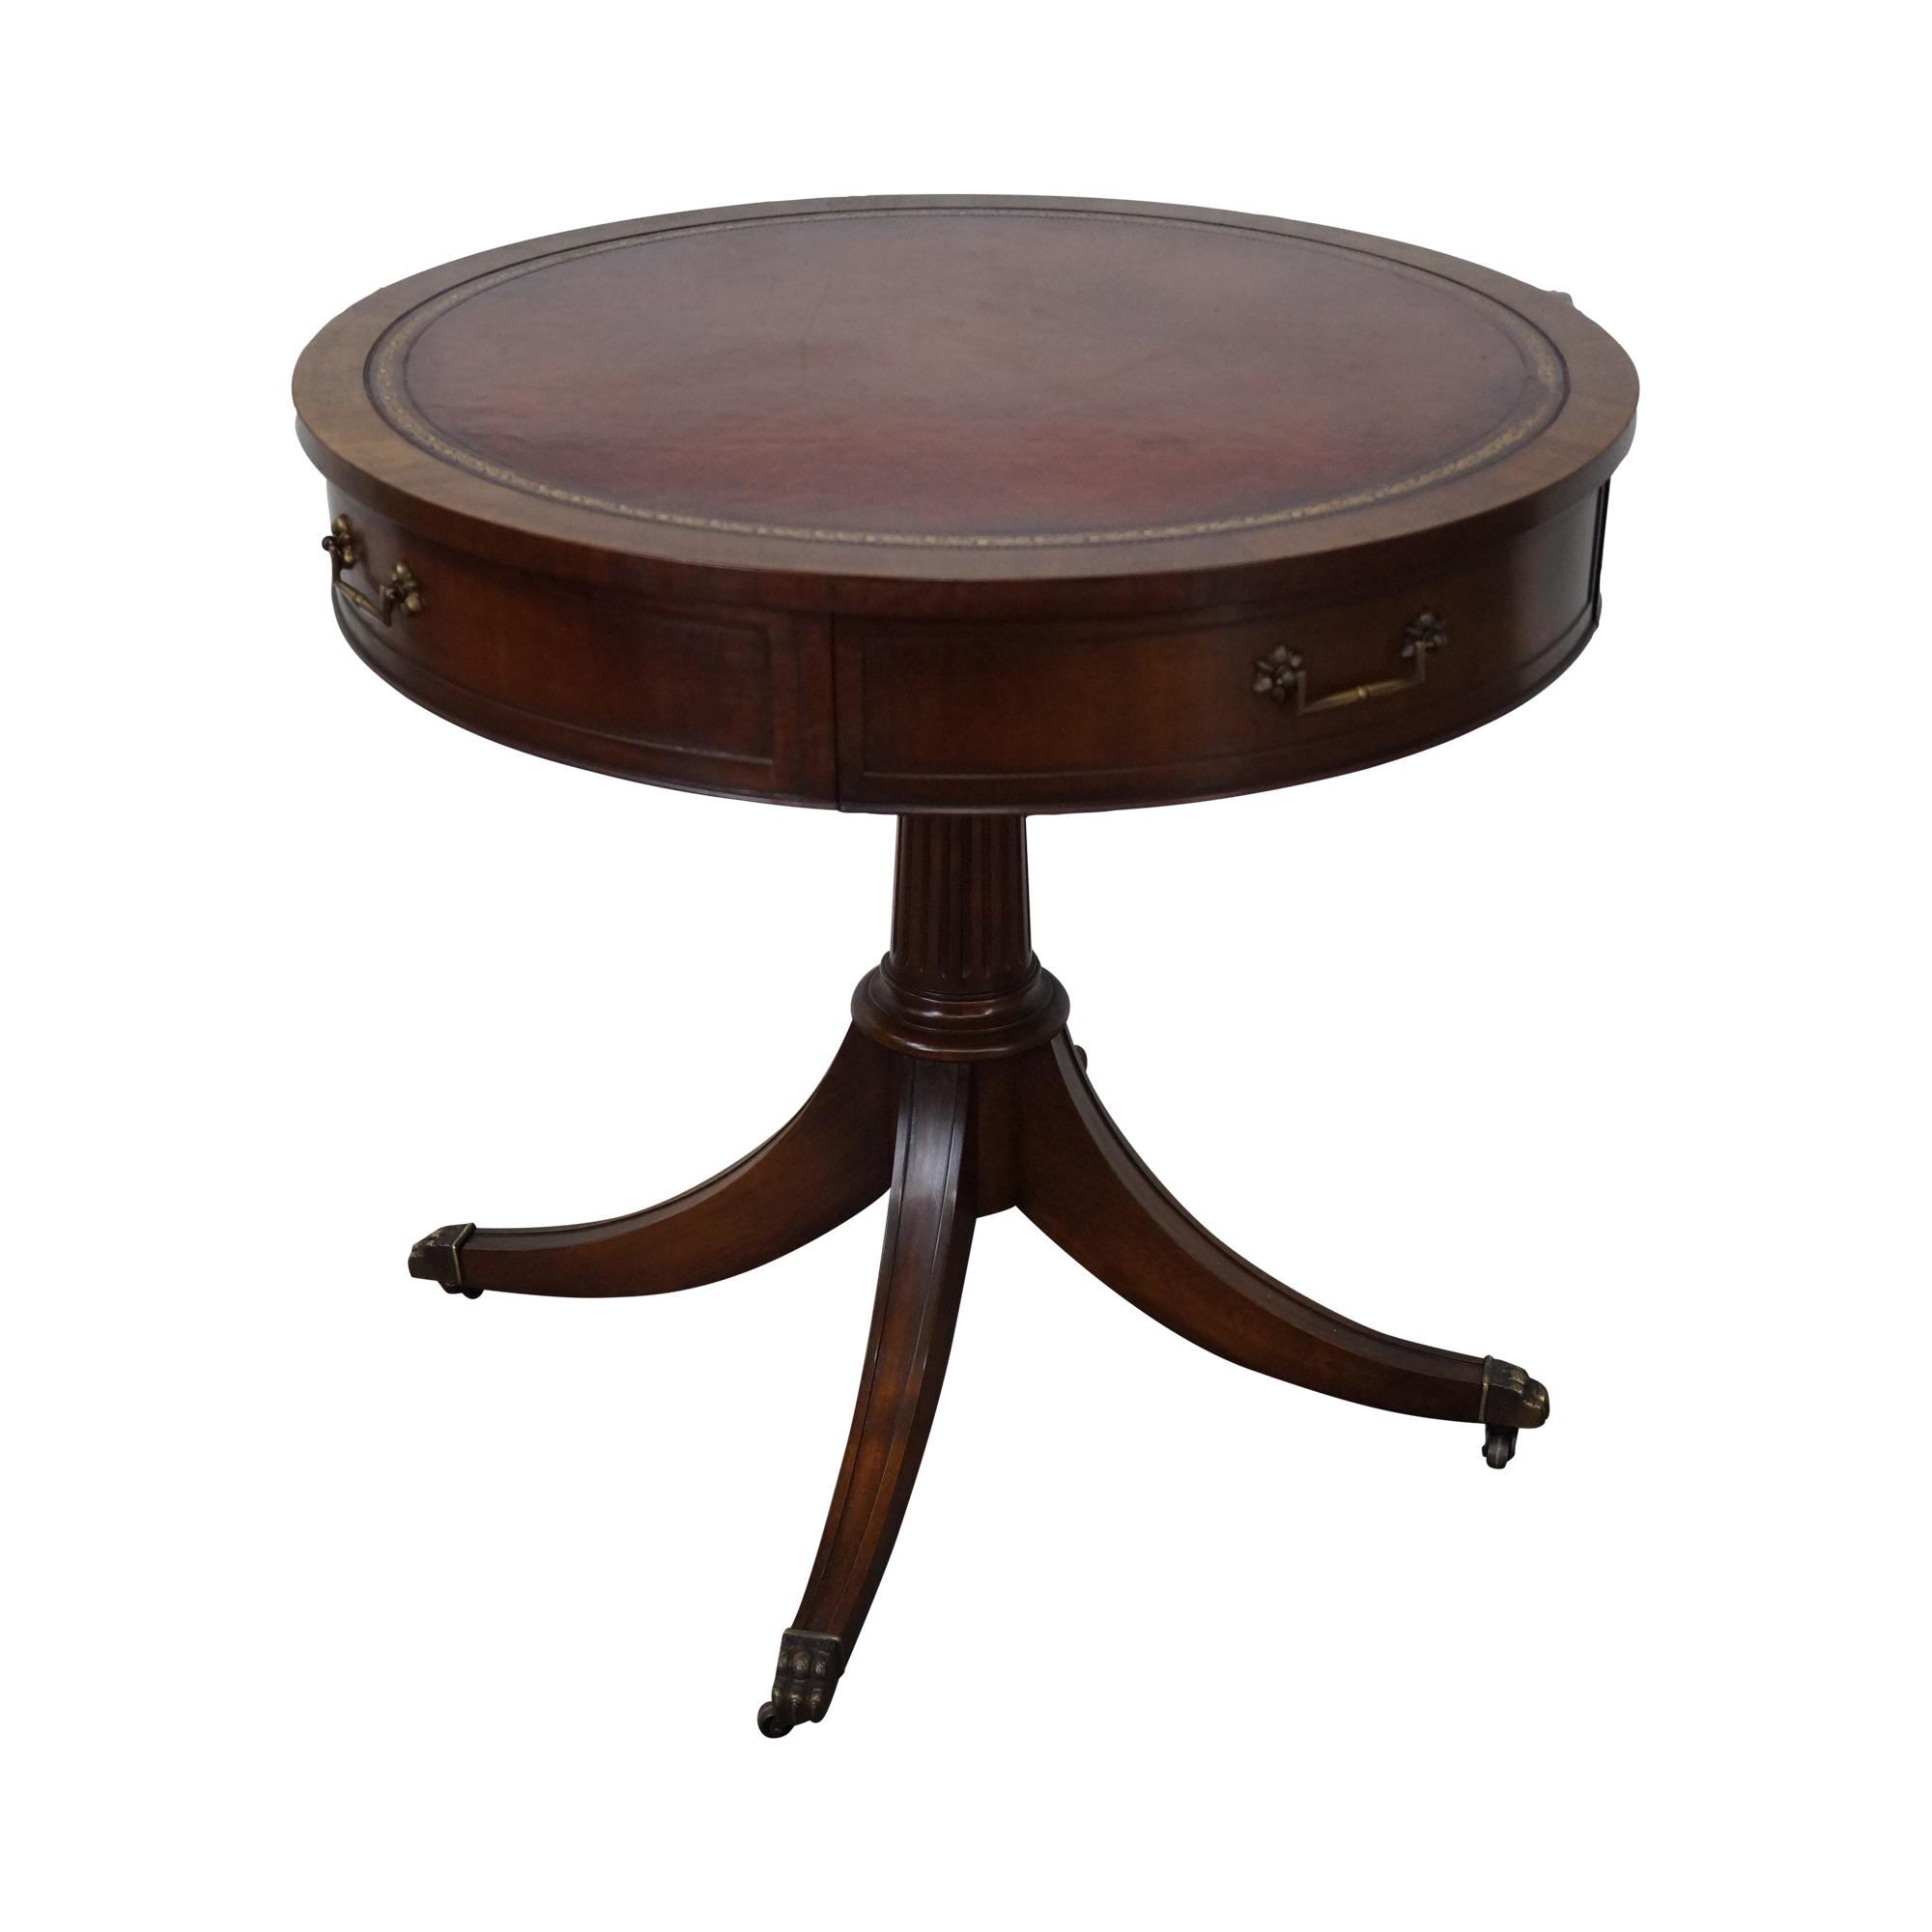 Antique Round Leather Top Coffee Table: Weiman 1940s Mahogany Round Leather Top Drum Table